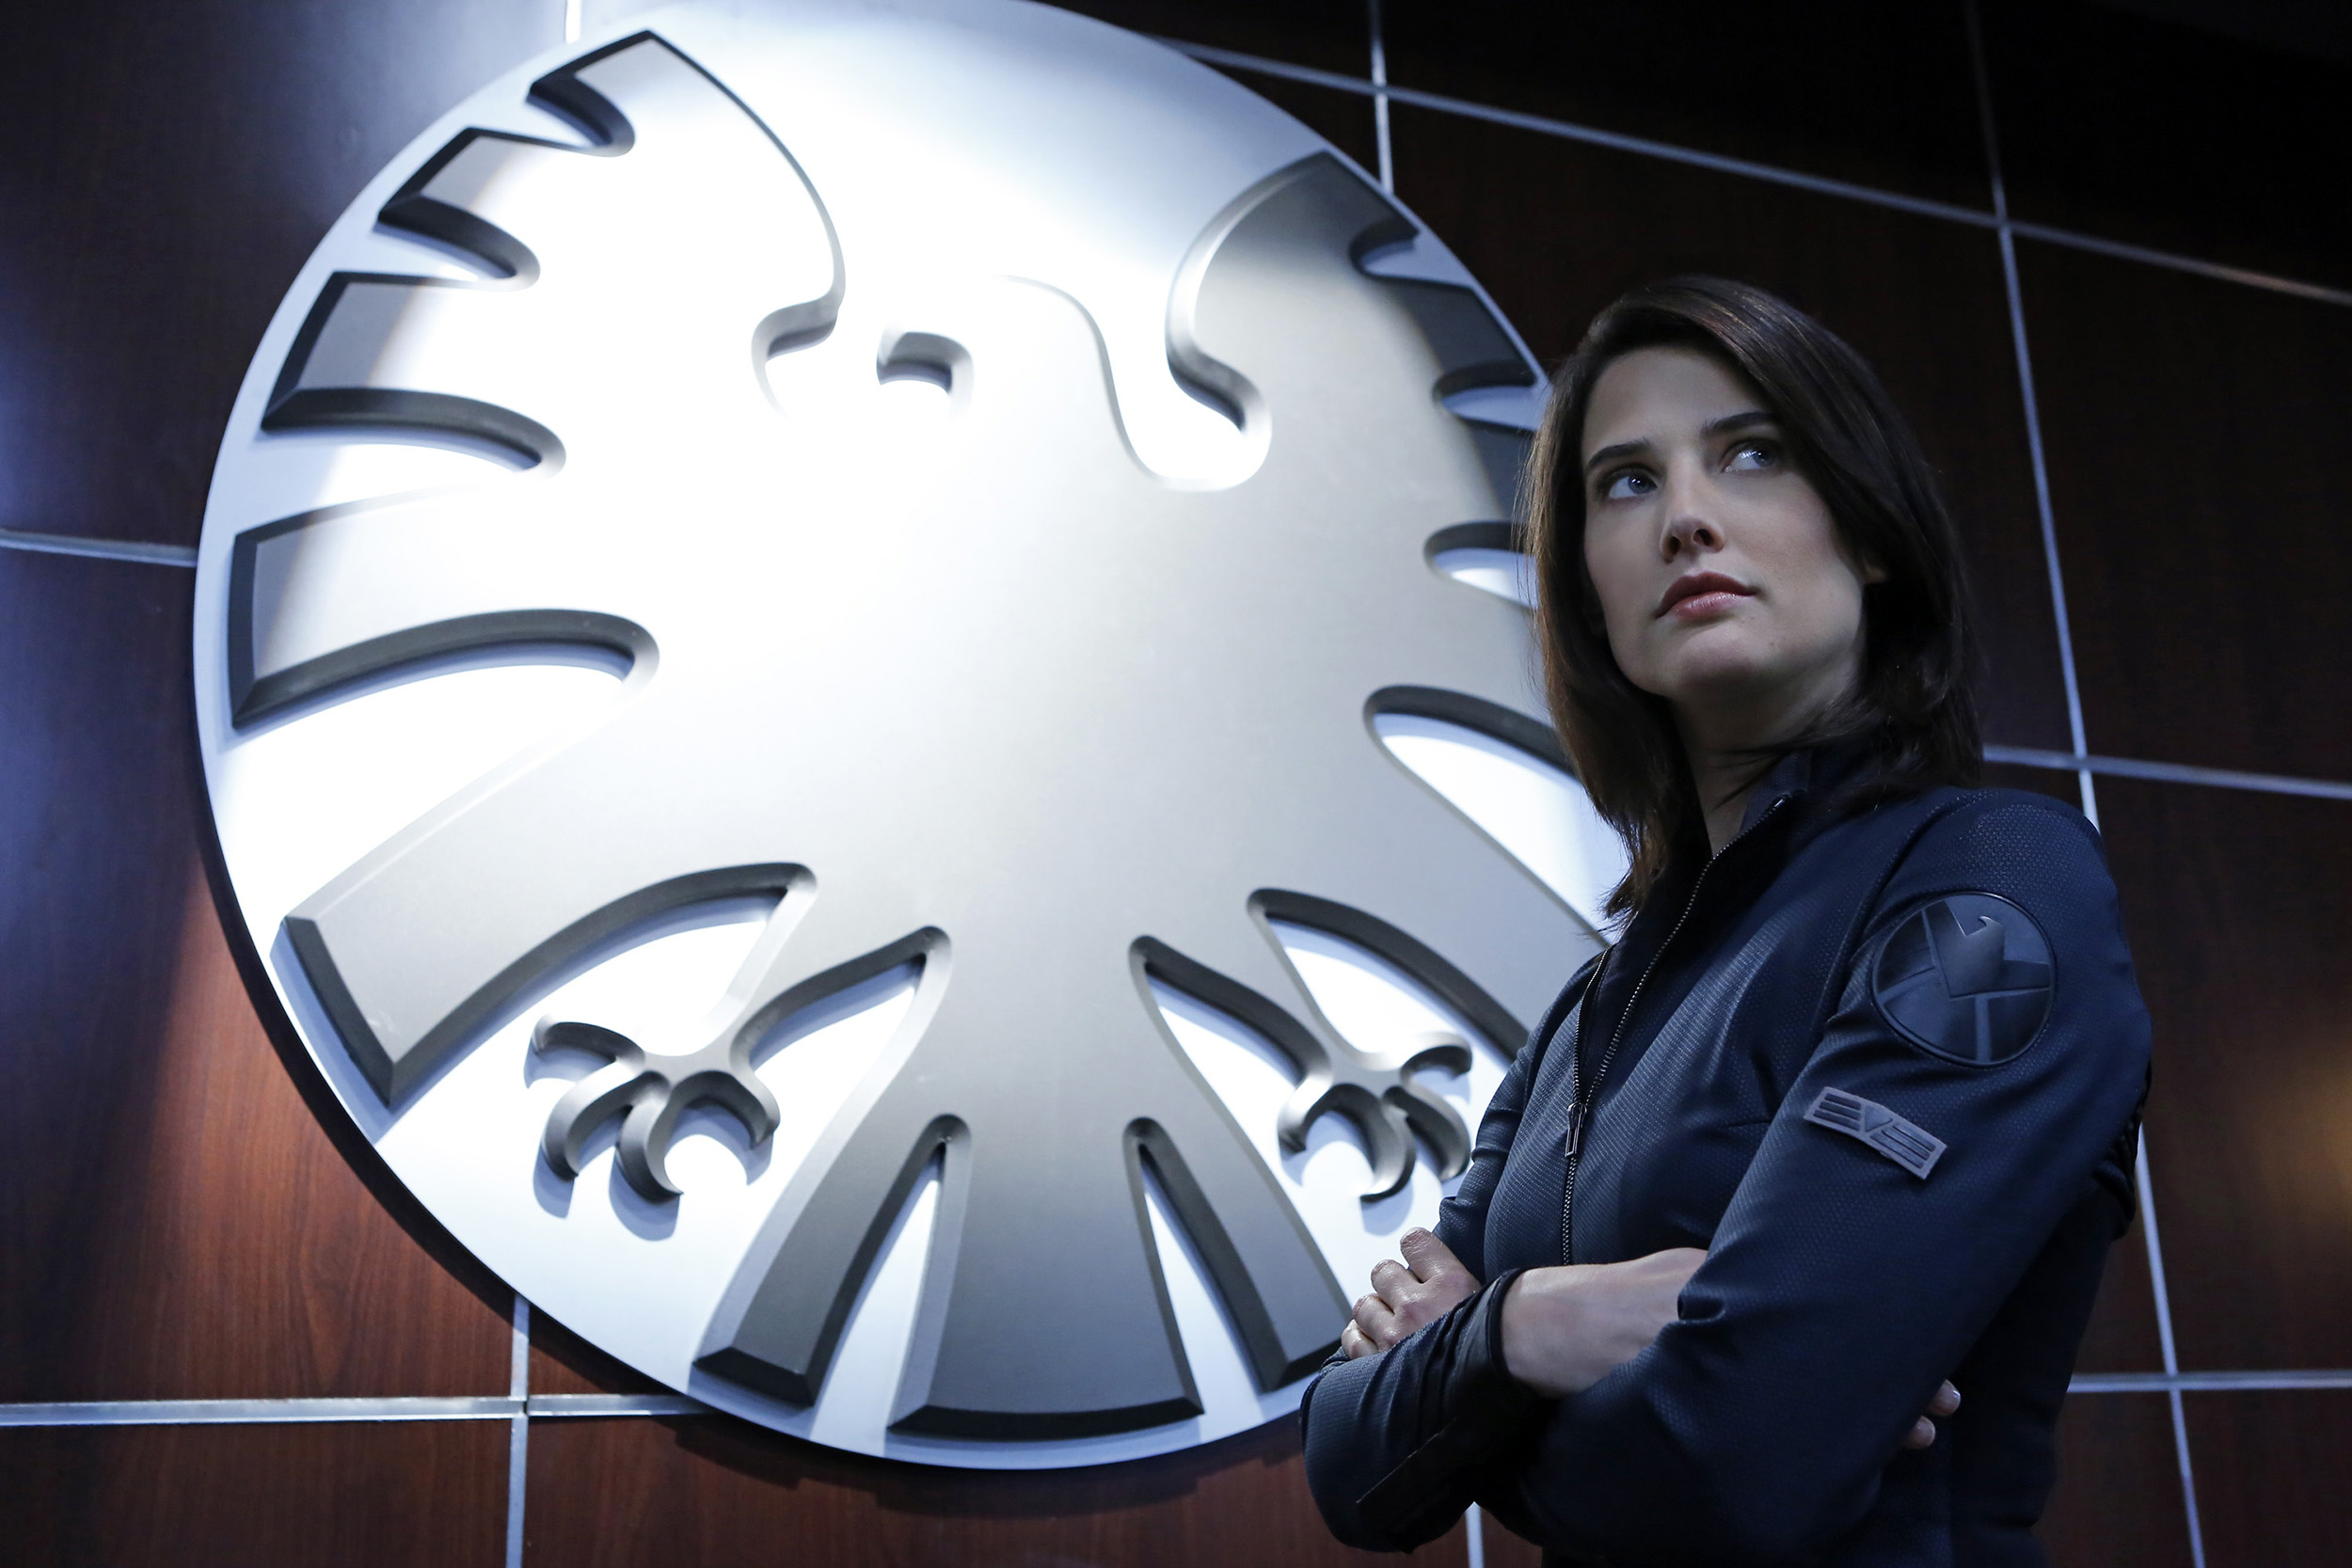 Cobie Smulders as Agent Maria Hill in Marvel's Agents of S.H.I.E.L.D.